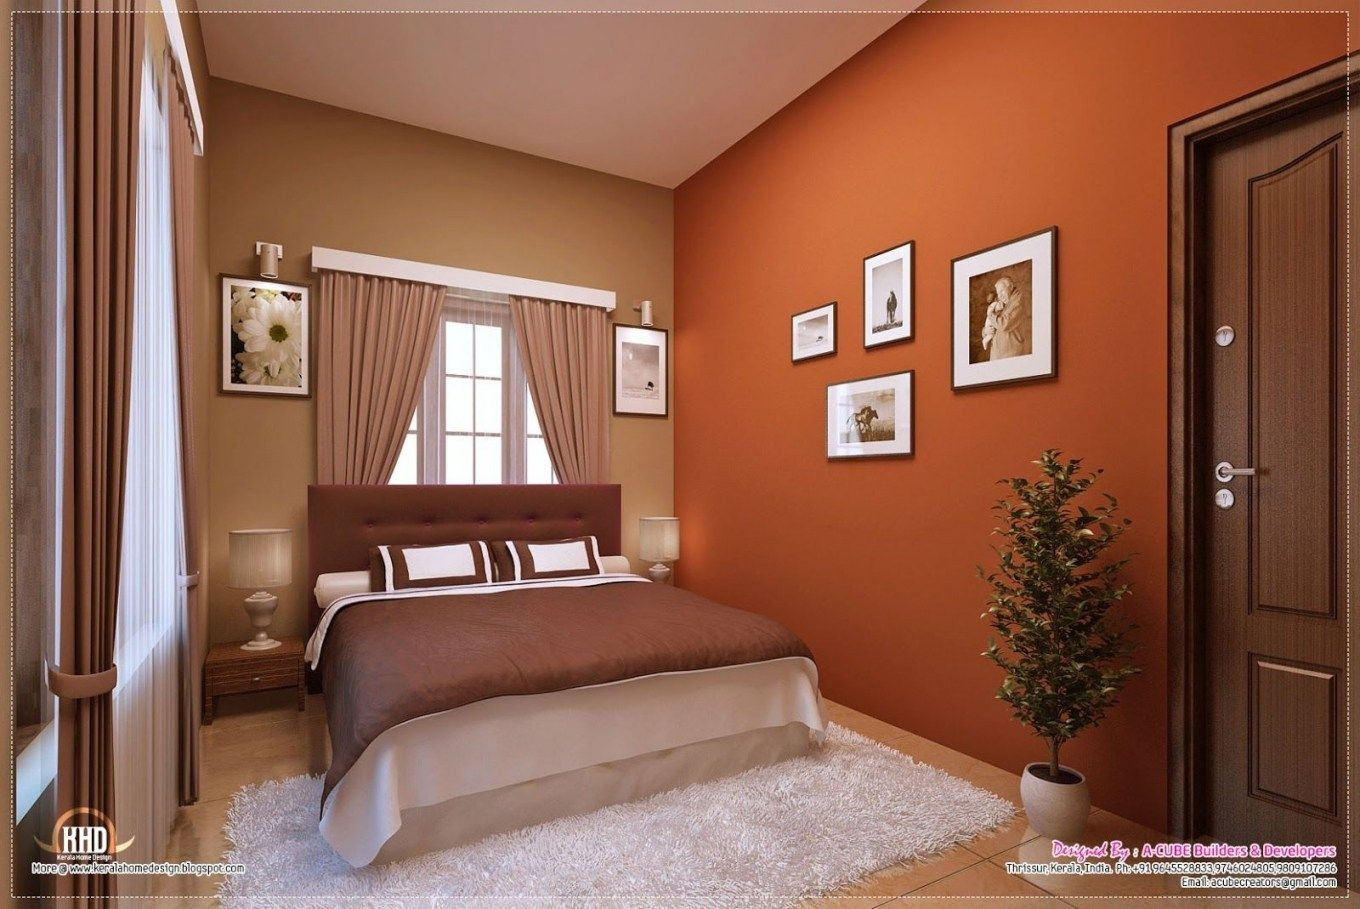 Top 10 Small Indian Bedroom Interior Design Pictures Top 10 Small